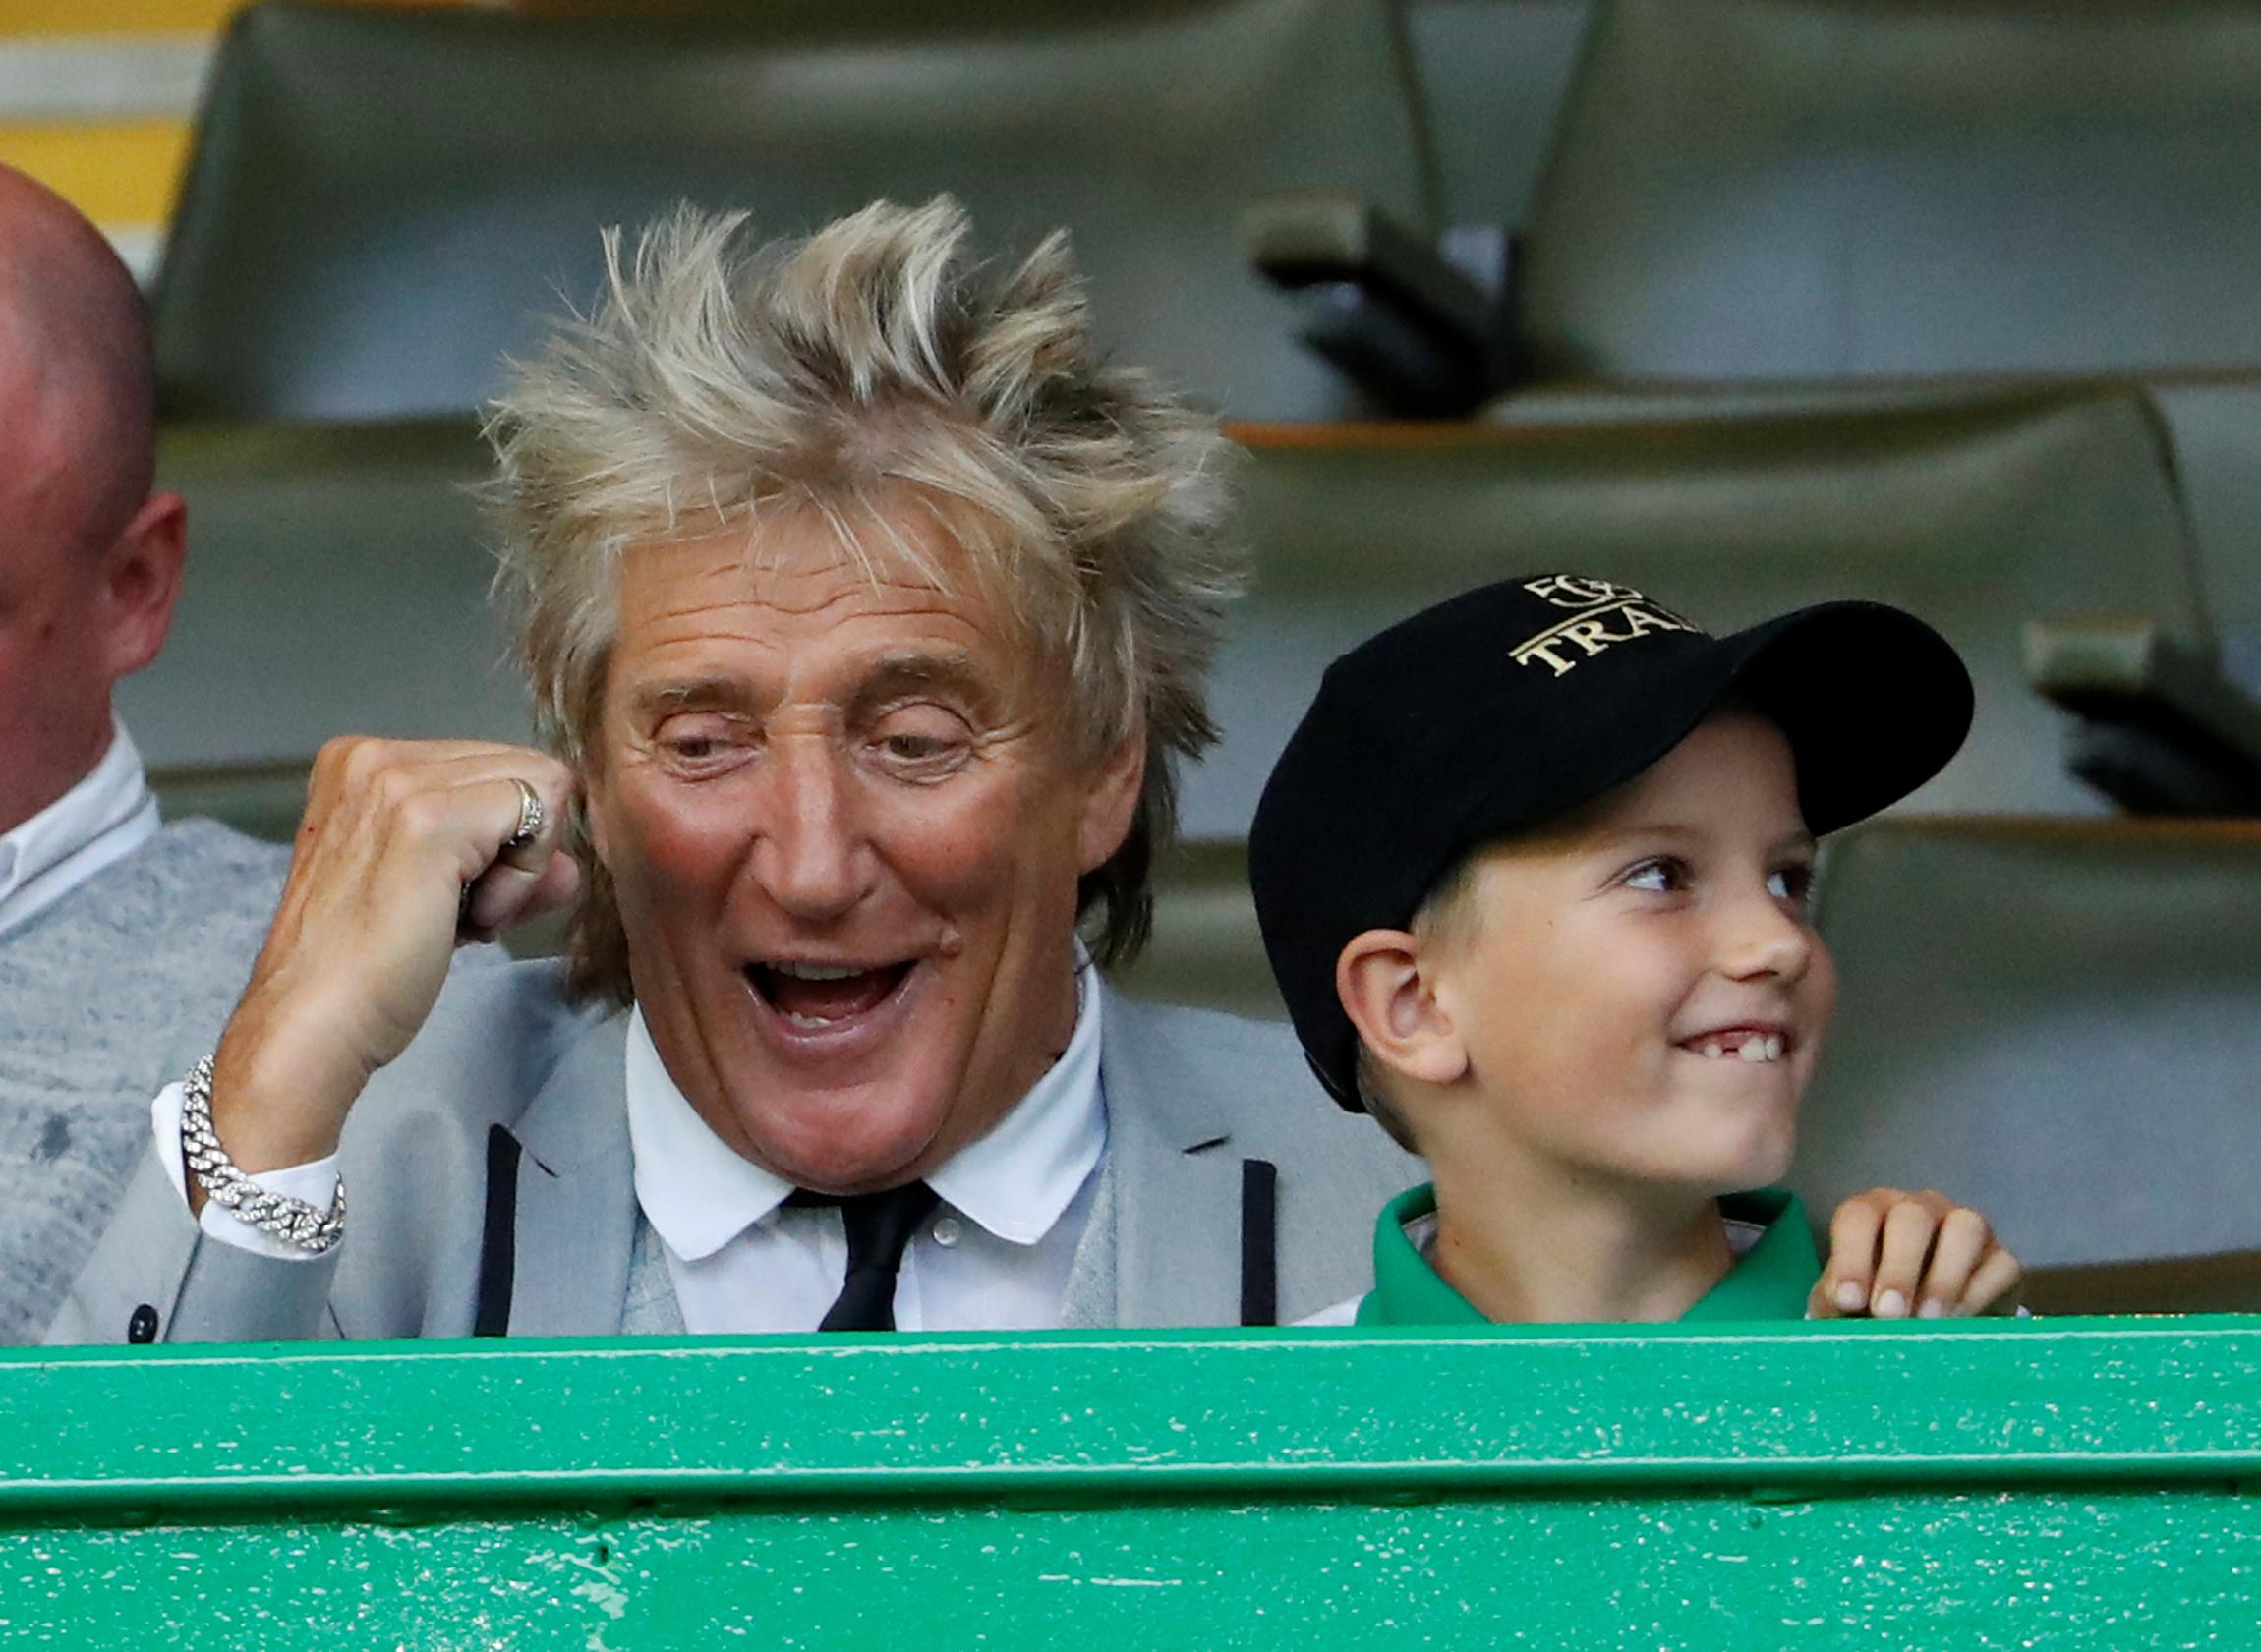 Soccer Football - Champions League - Third Qualifying Round Second Leg - Celtic v CFR Cluj - Celtic Park, Glasgow, Britain - August 13, 2019 Rod Stewart in the stands before the match REUTERS/Russell Cheyne